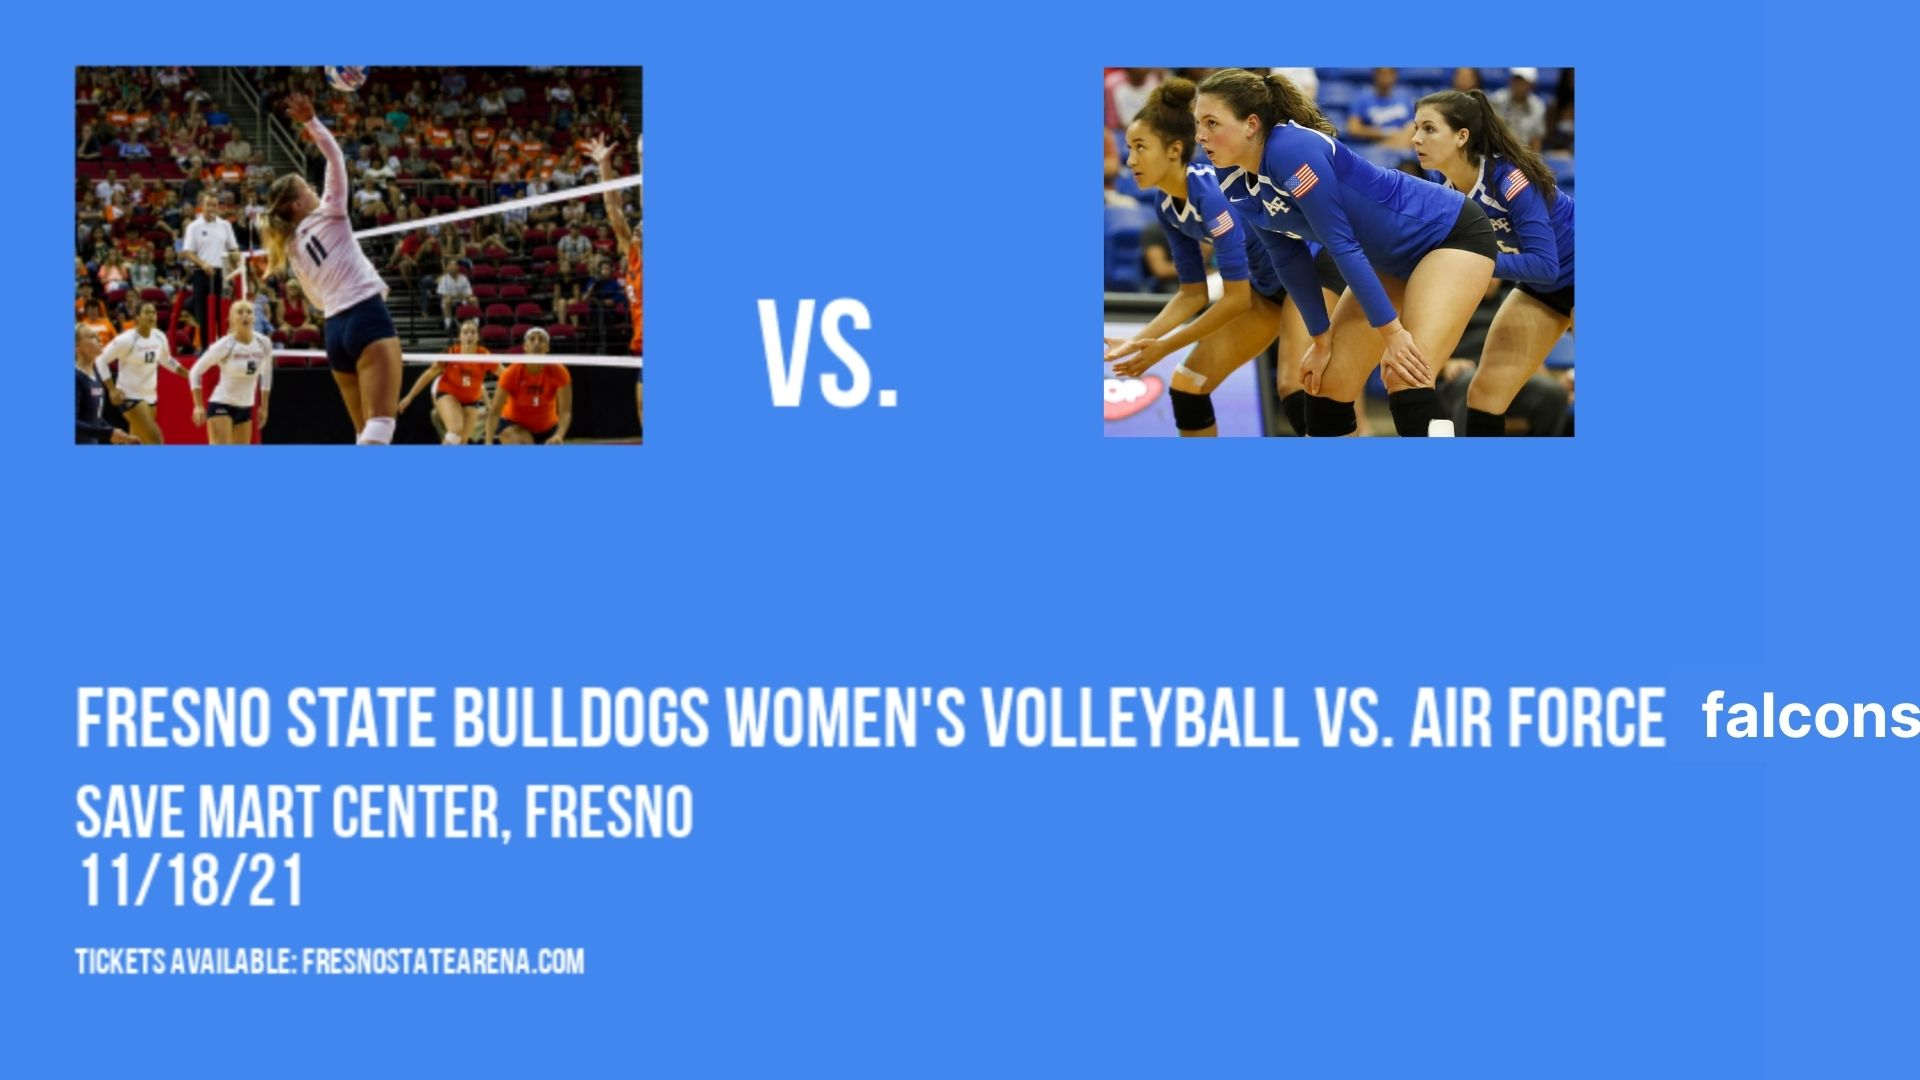 Fresno State Bulldogs Women's Volleyball vs. Air Force Falcons at Save Mart Center